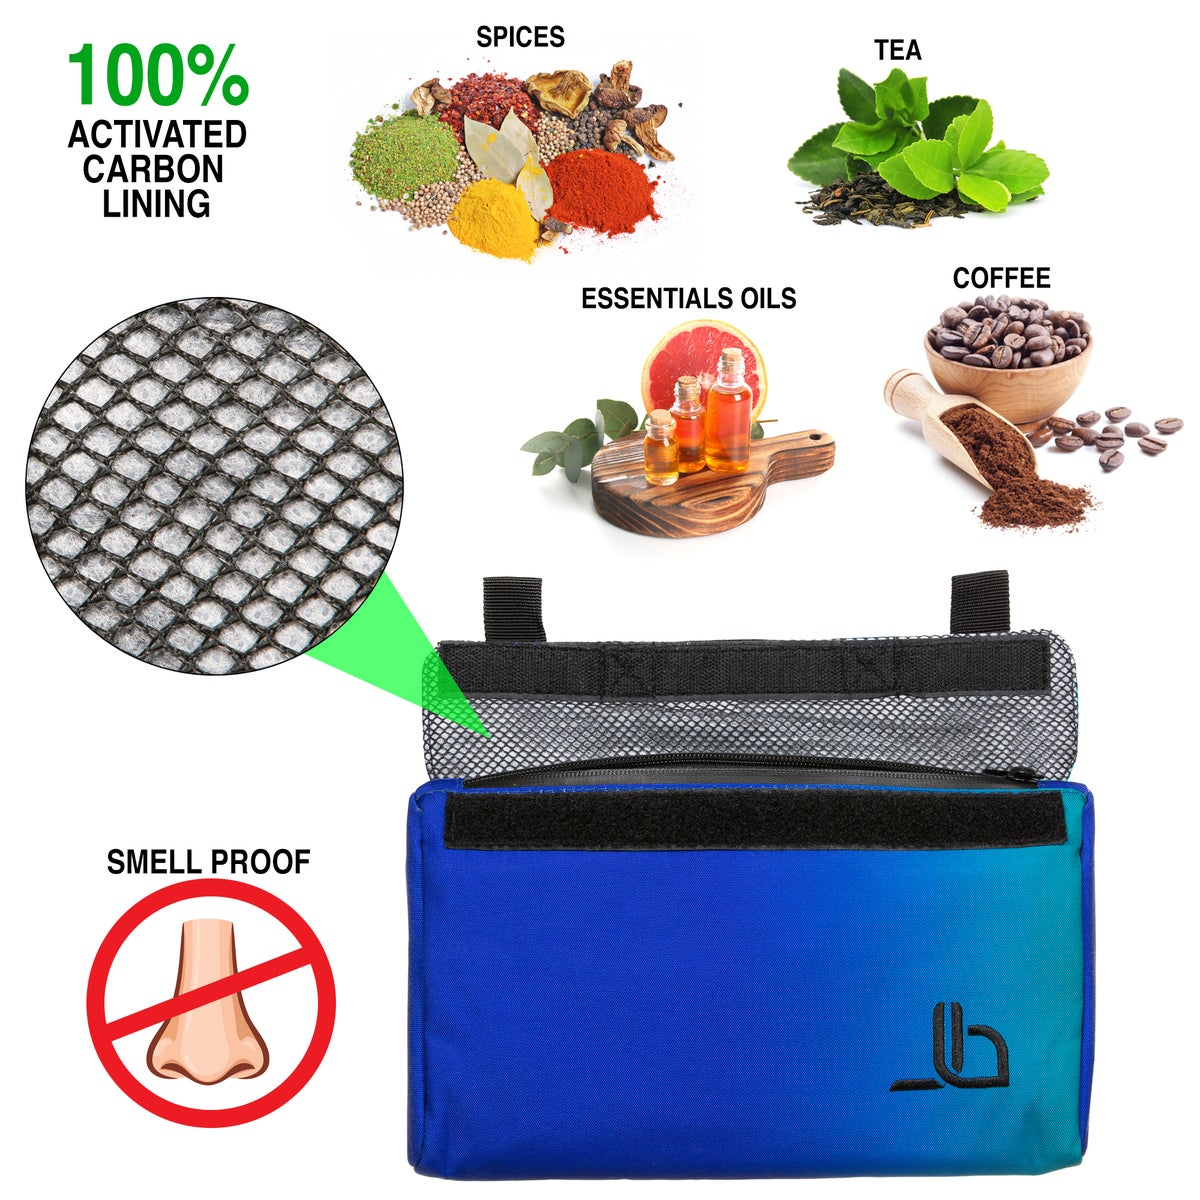 Smell Proof Bag - Eliminates Odor in Carbon Lined Airtight Bag